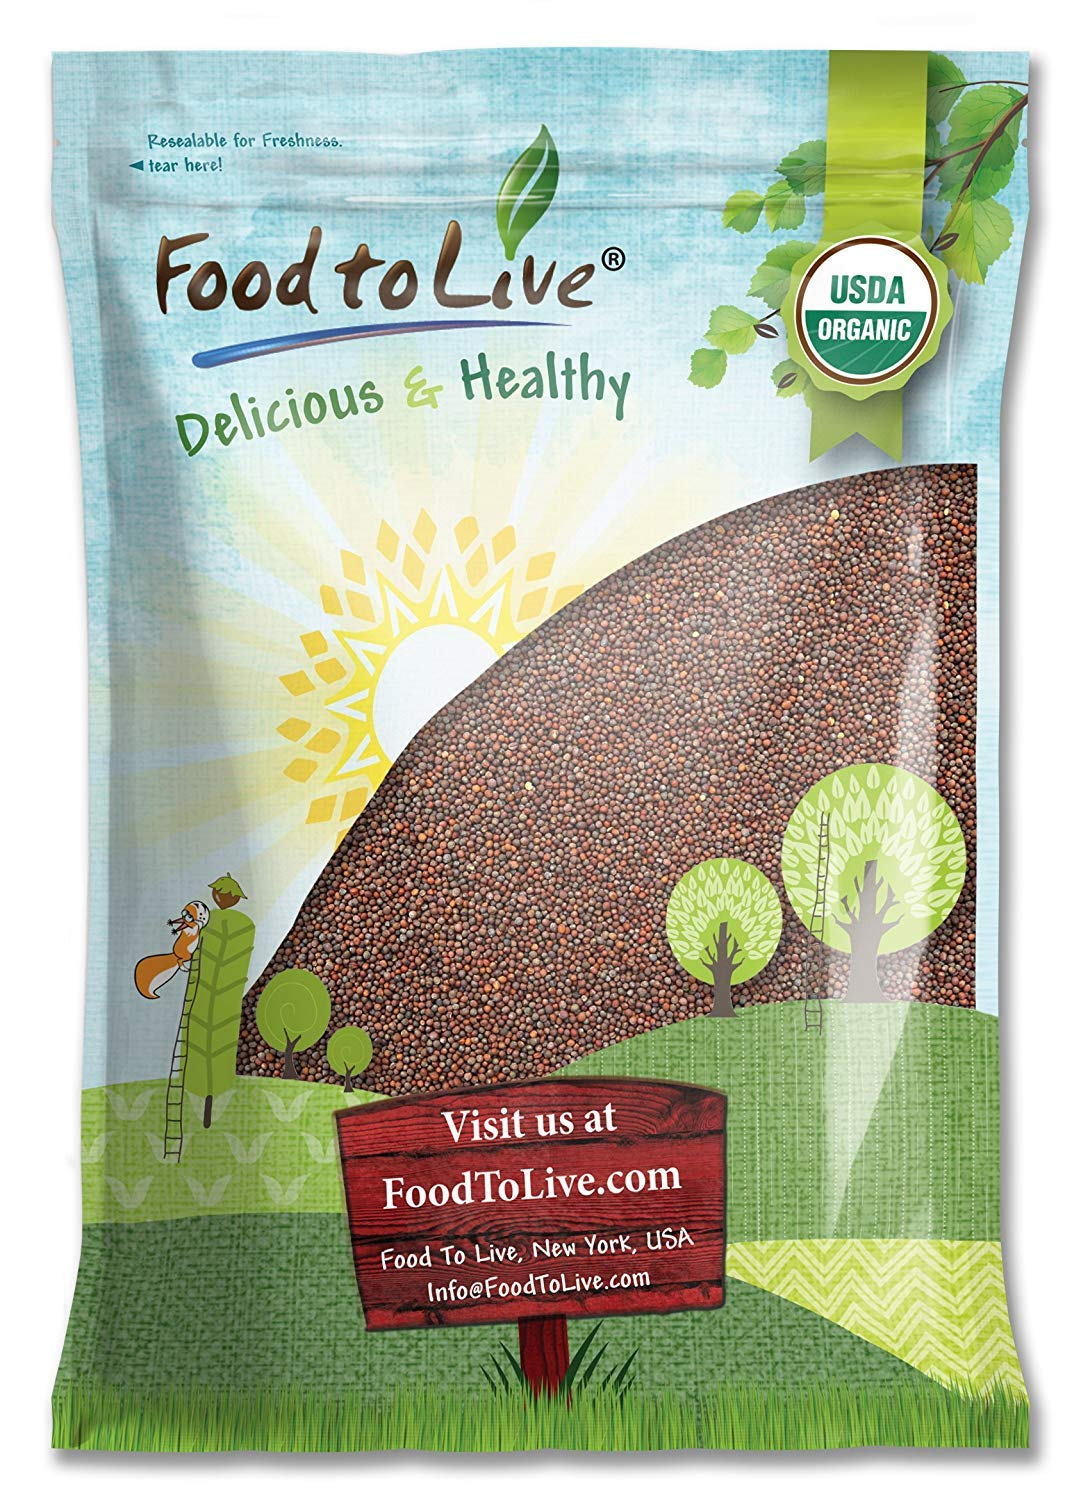 Organic Broccoli Seeds for Sprouting by Food to Live (Non GMO, Kosher, Bulk) — 5 Pounds